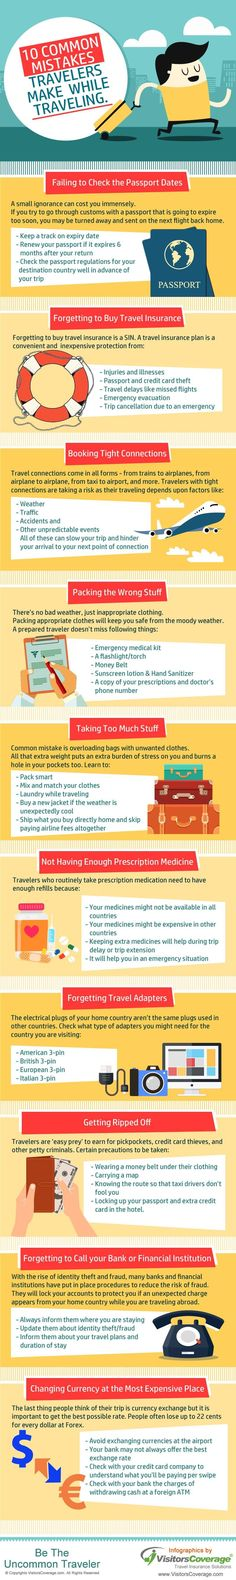 Here is an infographic that represents some of the most common travel mistakes made by travelers. Considering to rectify these mistakes can help travelers to avoid mishaps and have a smooth journey. I Want To Travel, Ways To Travel, Travel Info, Travel Advice, Budget Travel, Travel Guides, Travel Tips, Travel Destinations, Travel Hacks